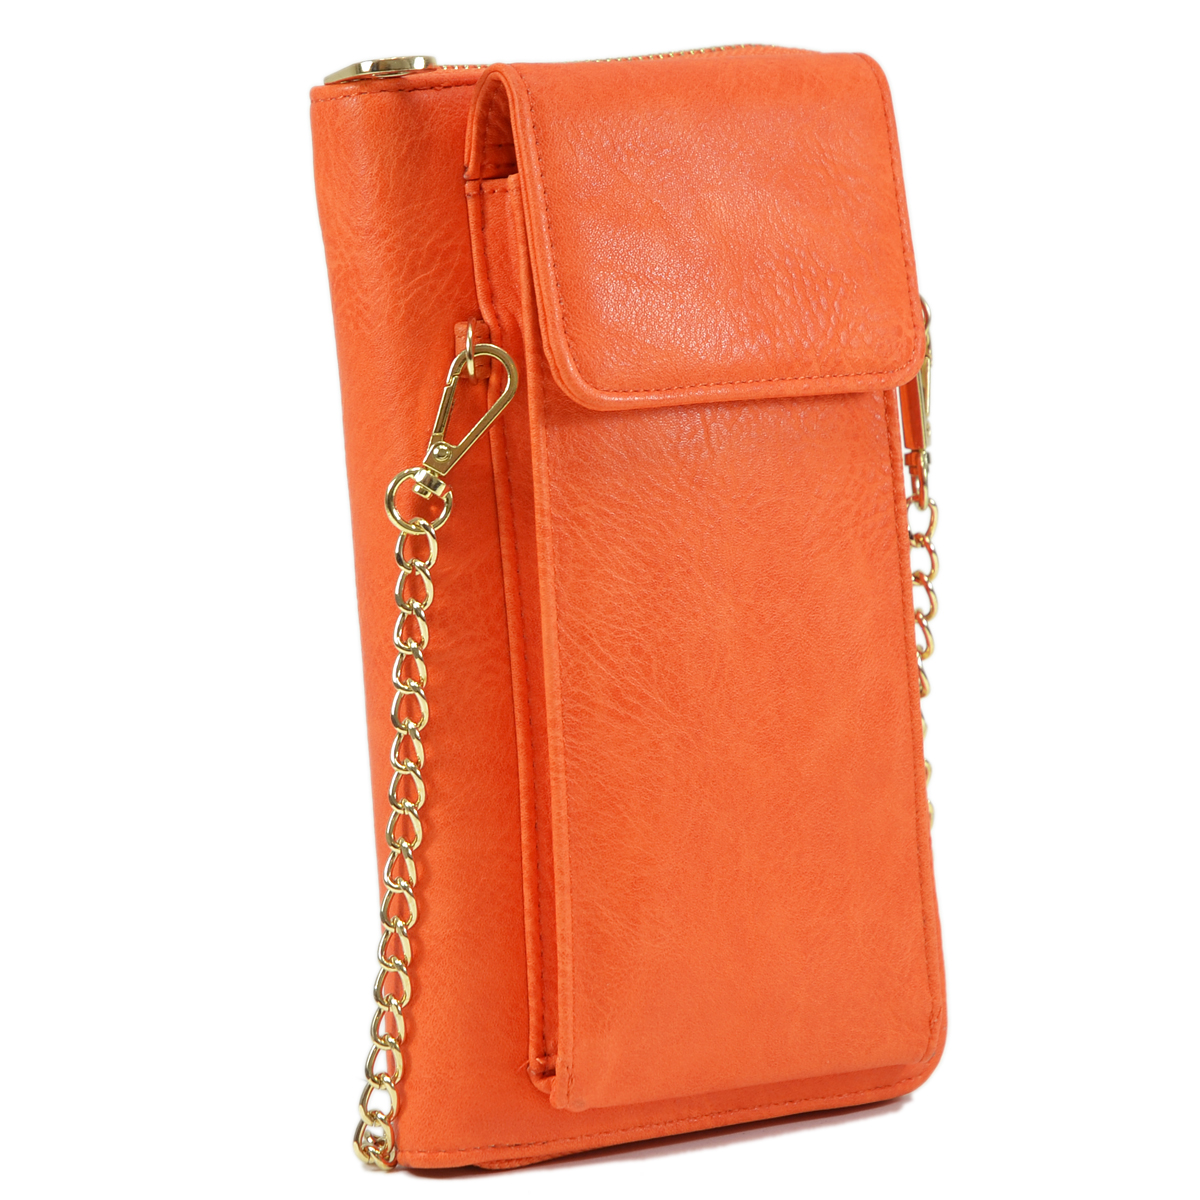 All-In-One Crossbody Wallet with Phone case and Detachable Chain Strap